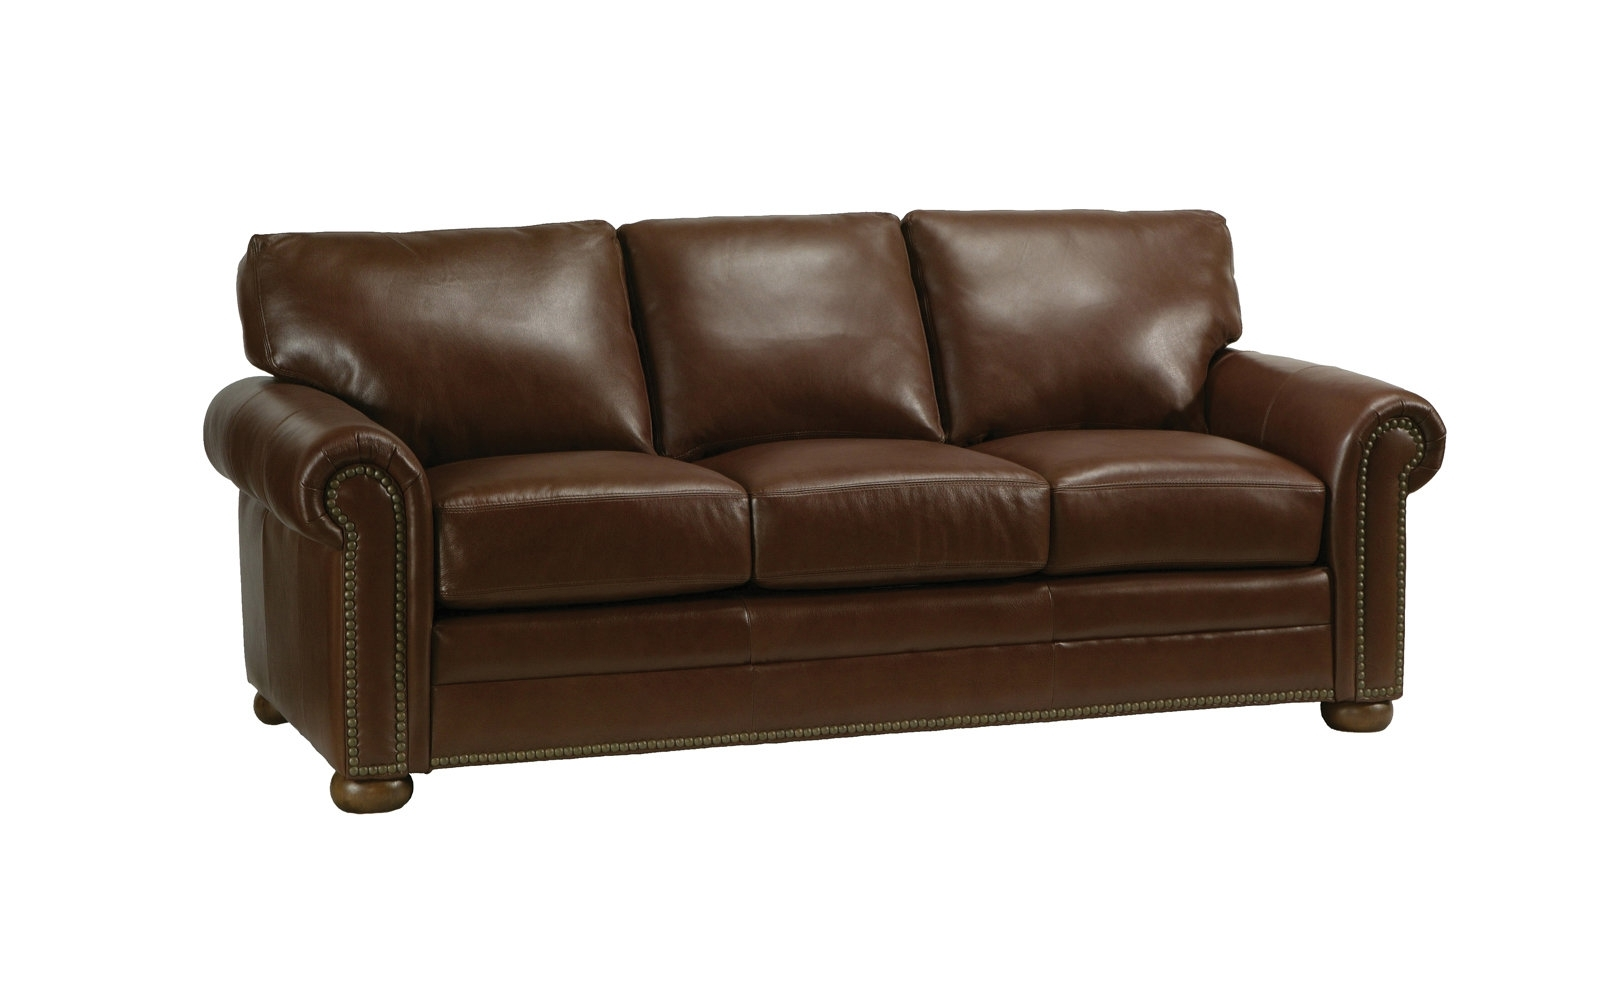 Omnia Leather | Wayfair pertaining to Delano Smoke 3 Piece Sectionals (Image 22 of 30)